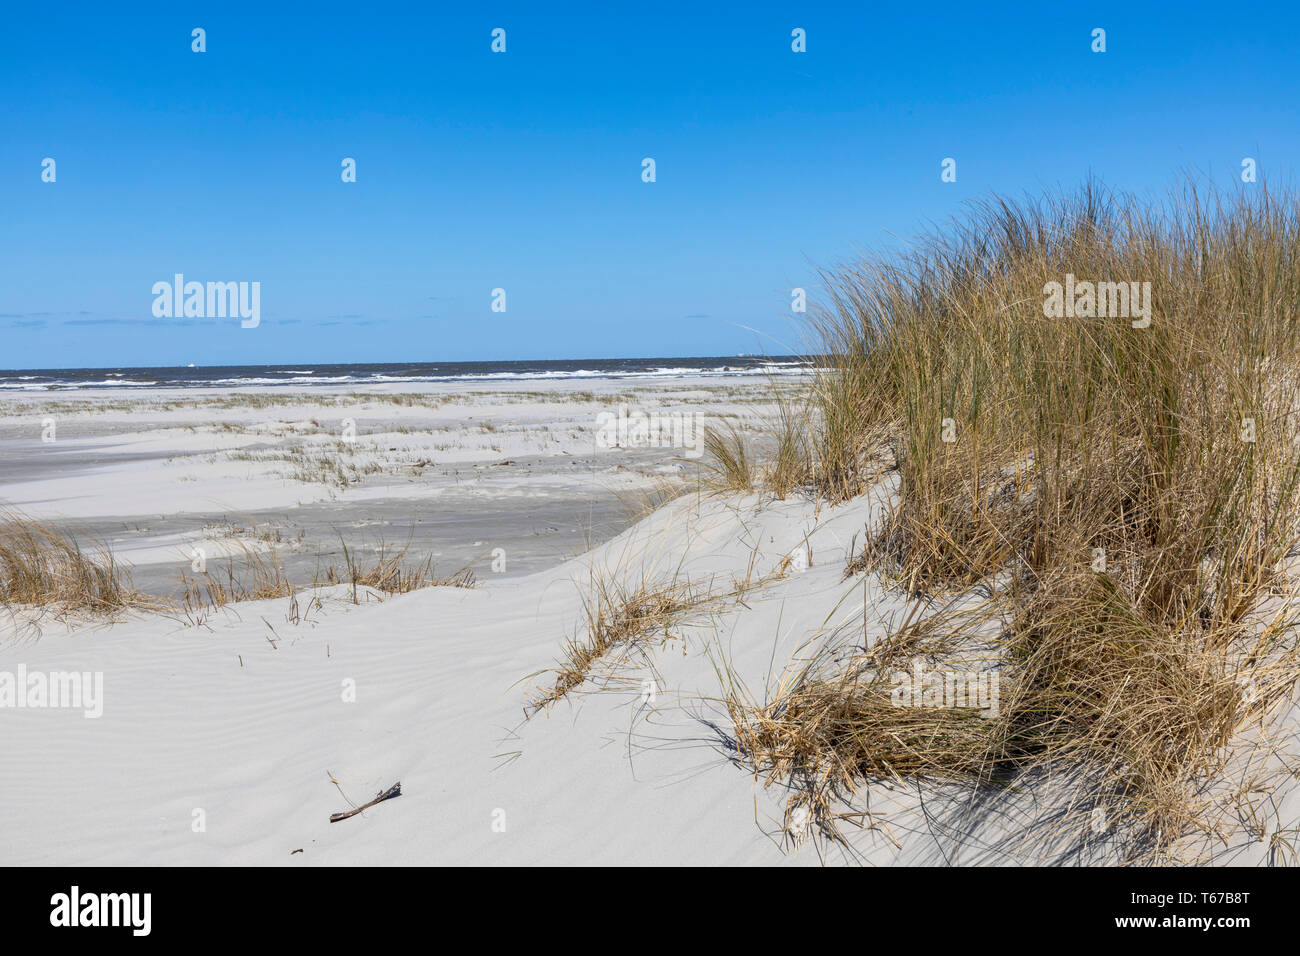 North Sea island of Juist, East Frisia, beach and dune landscape, at the eastern end of the island, Kalfamer nature protection area, Lower Saxony, Ger - Stock Image